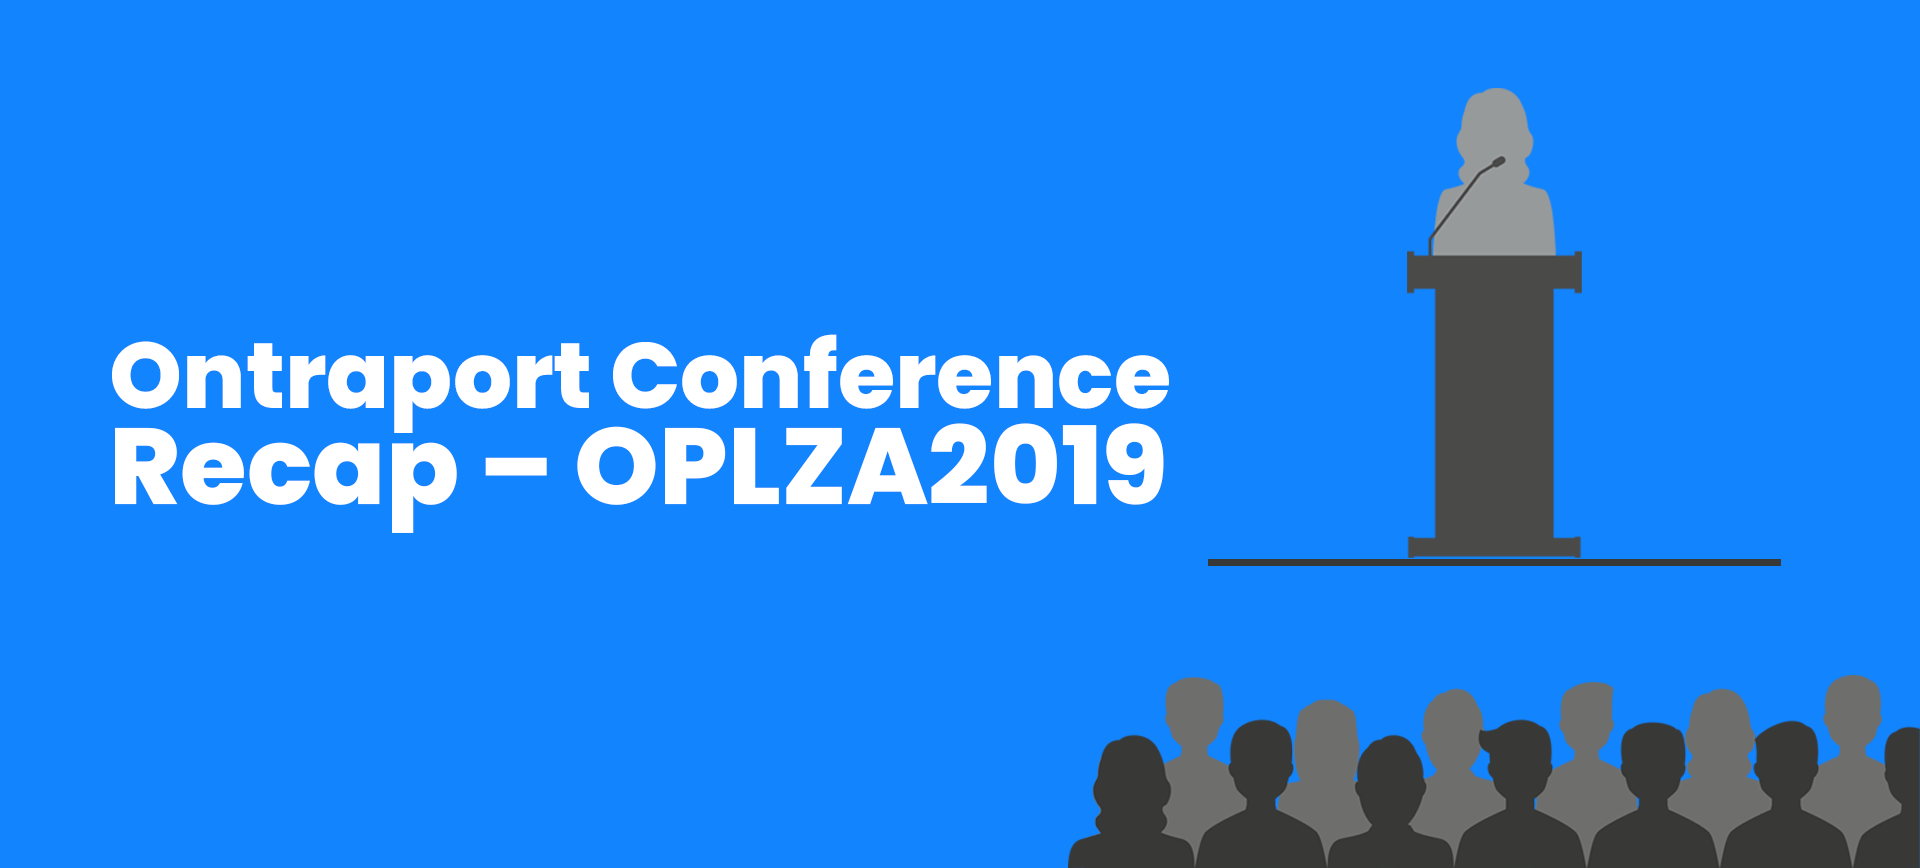 Ontraport Conference Recap – OPLZA2019